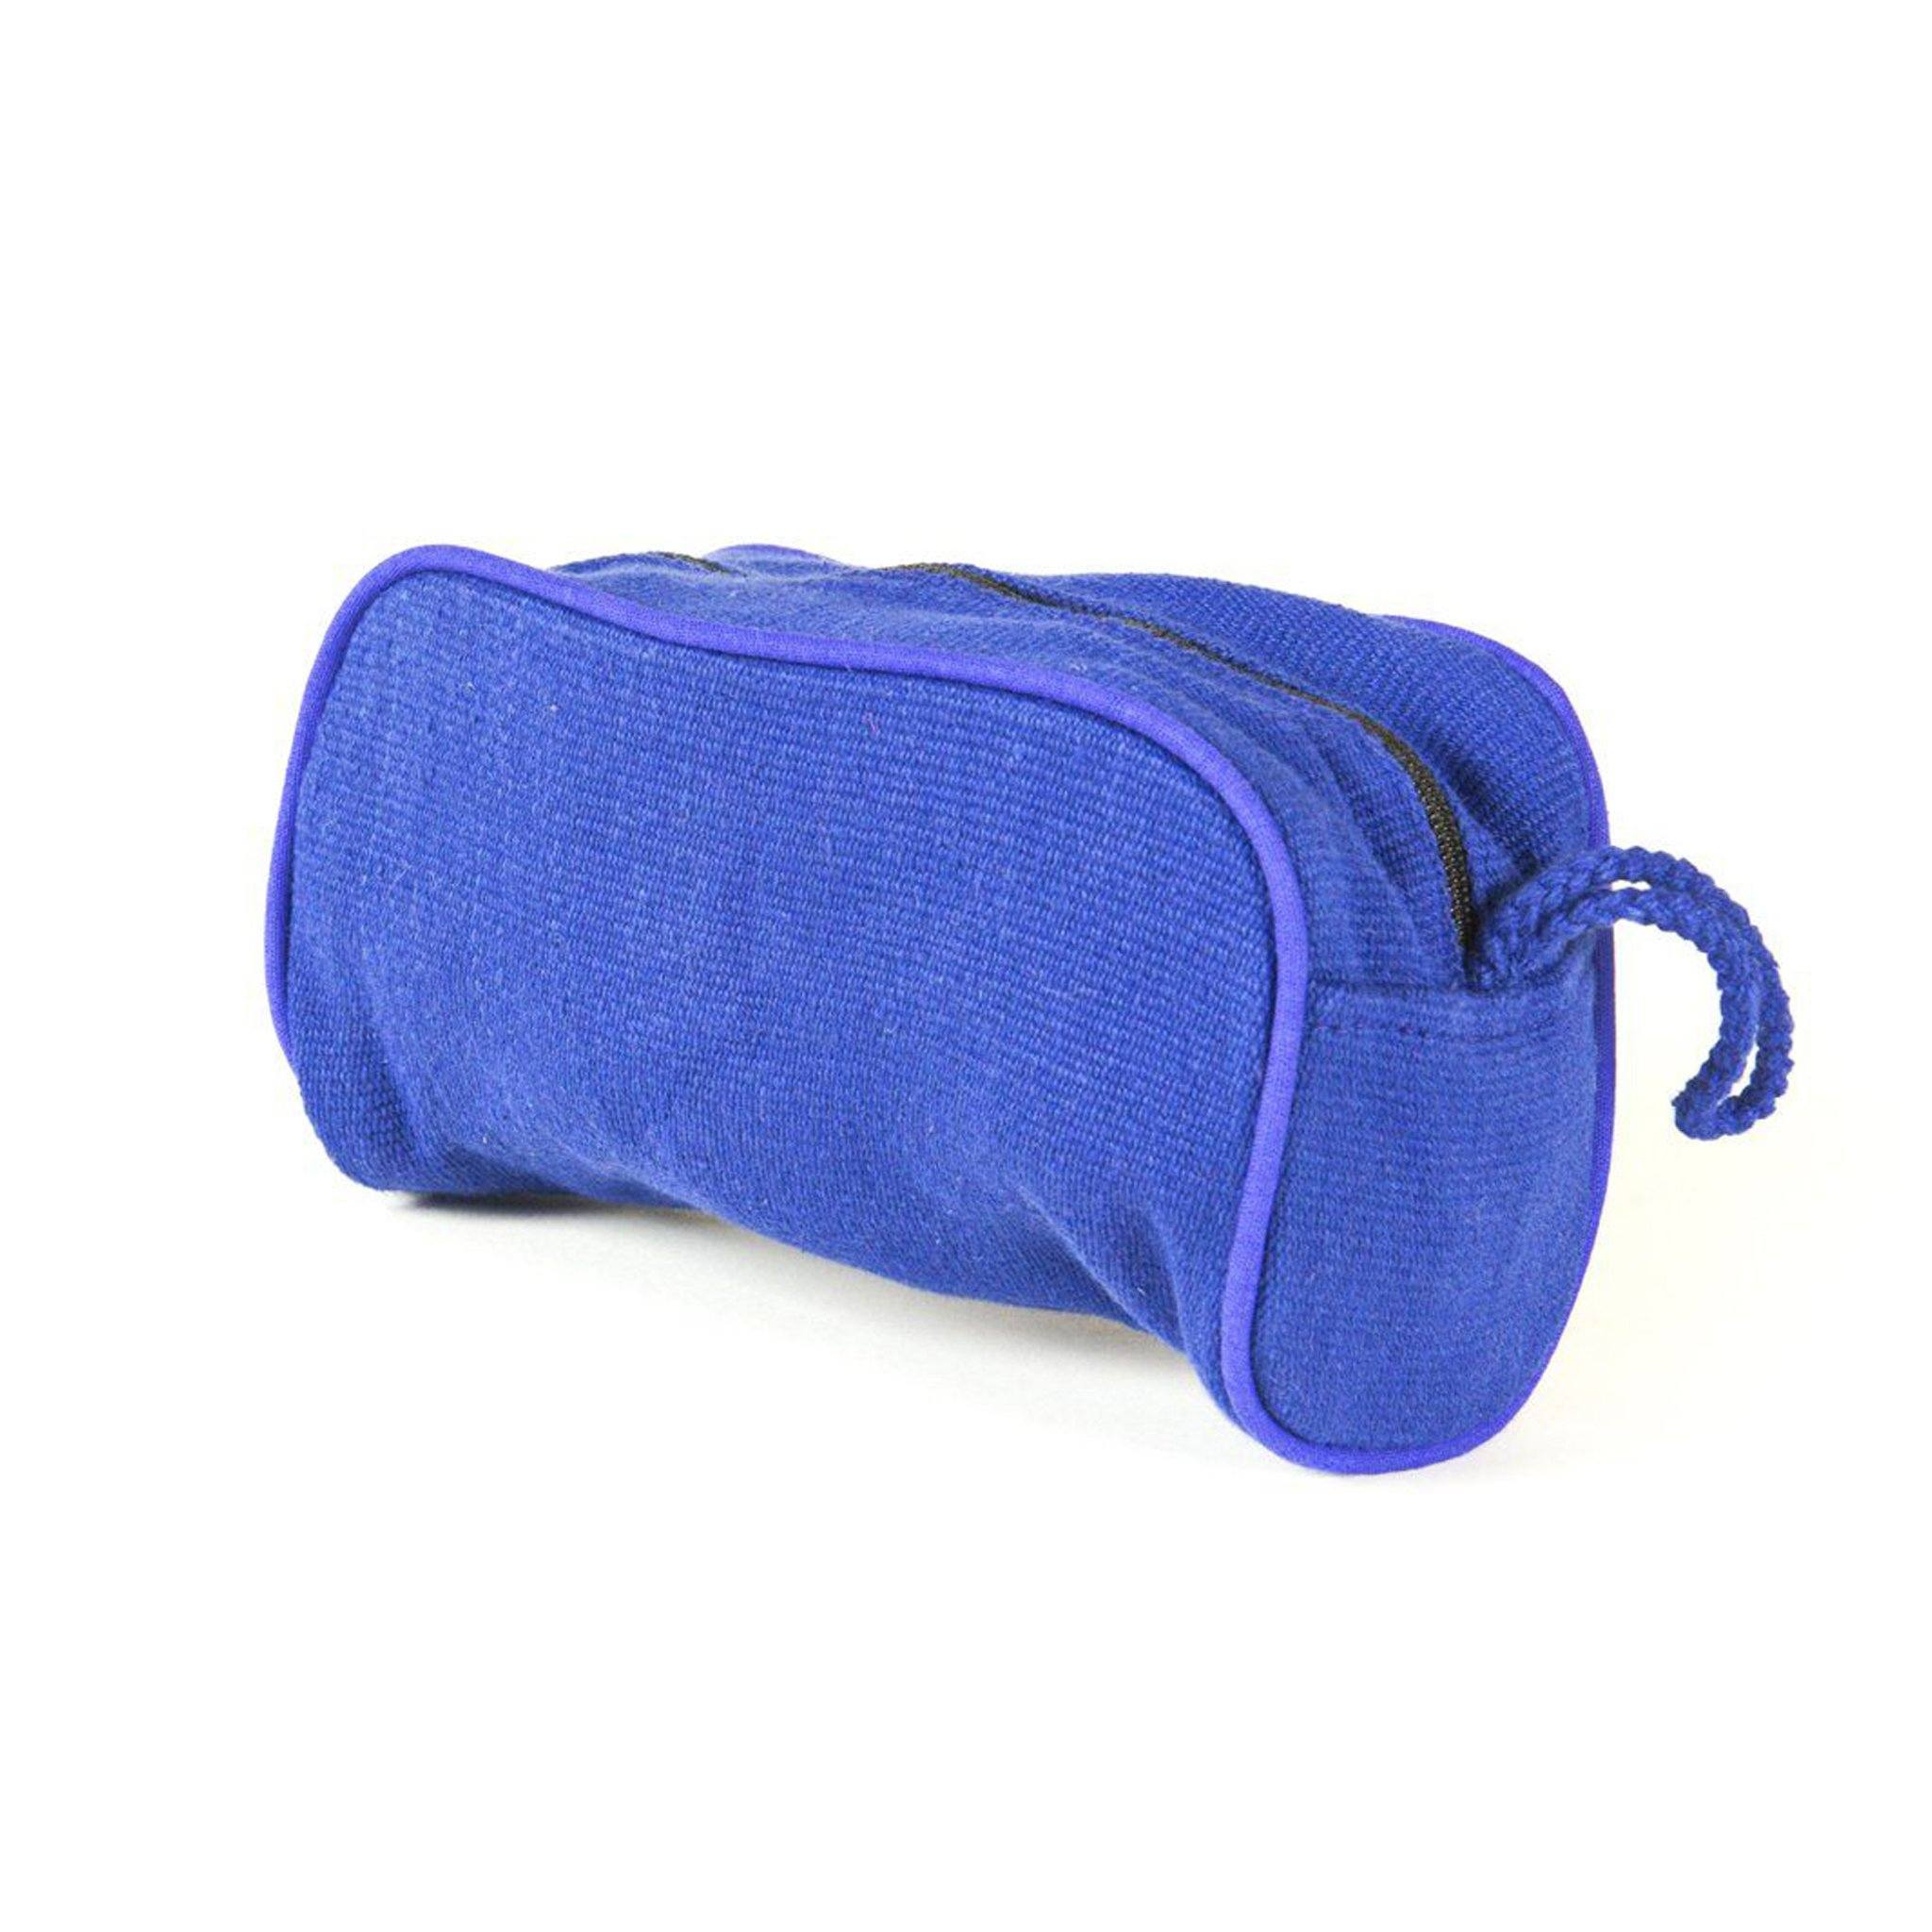 Blue Beauty Bag WSDP